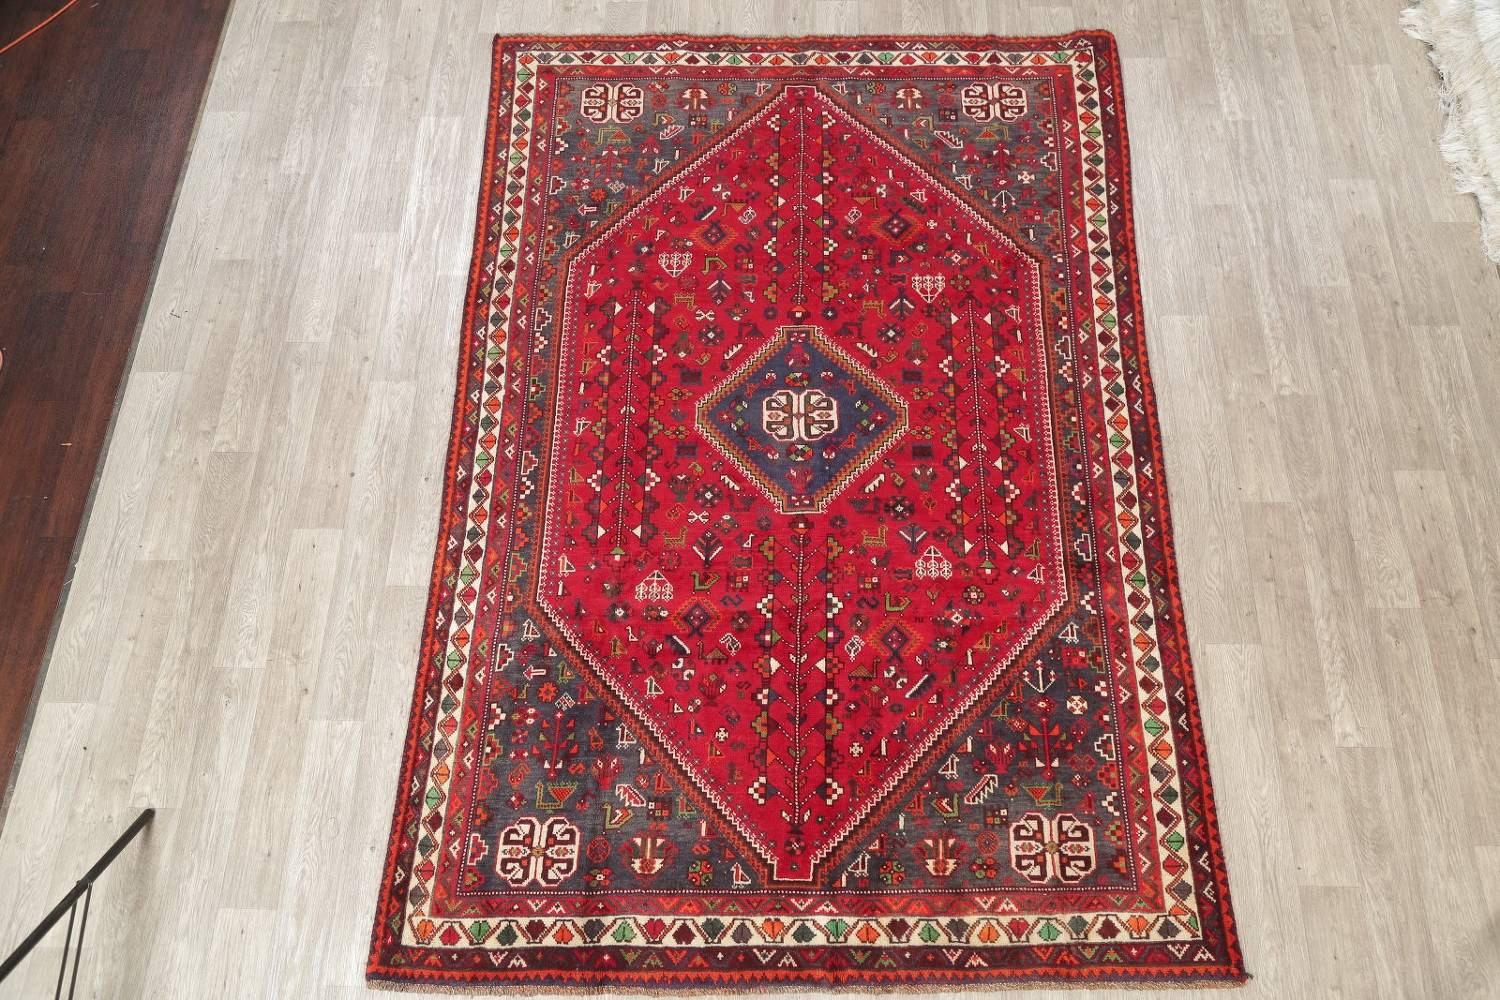 One-of-a-Kind Antique Tribal Shiraz Persian Hand-Knotted 7x10 Wool Area Rug image 24